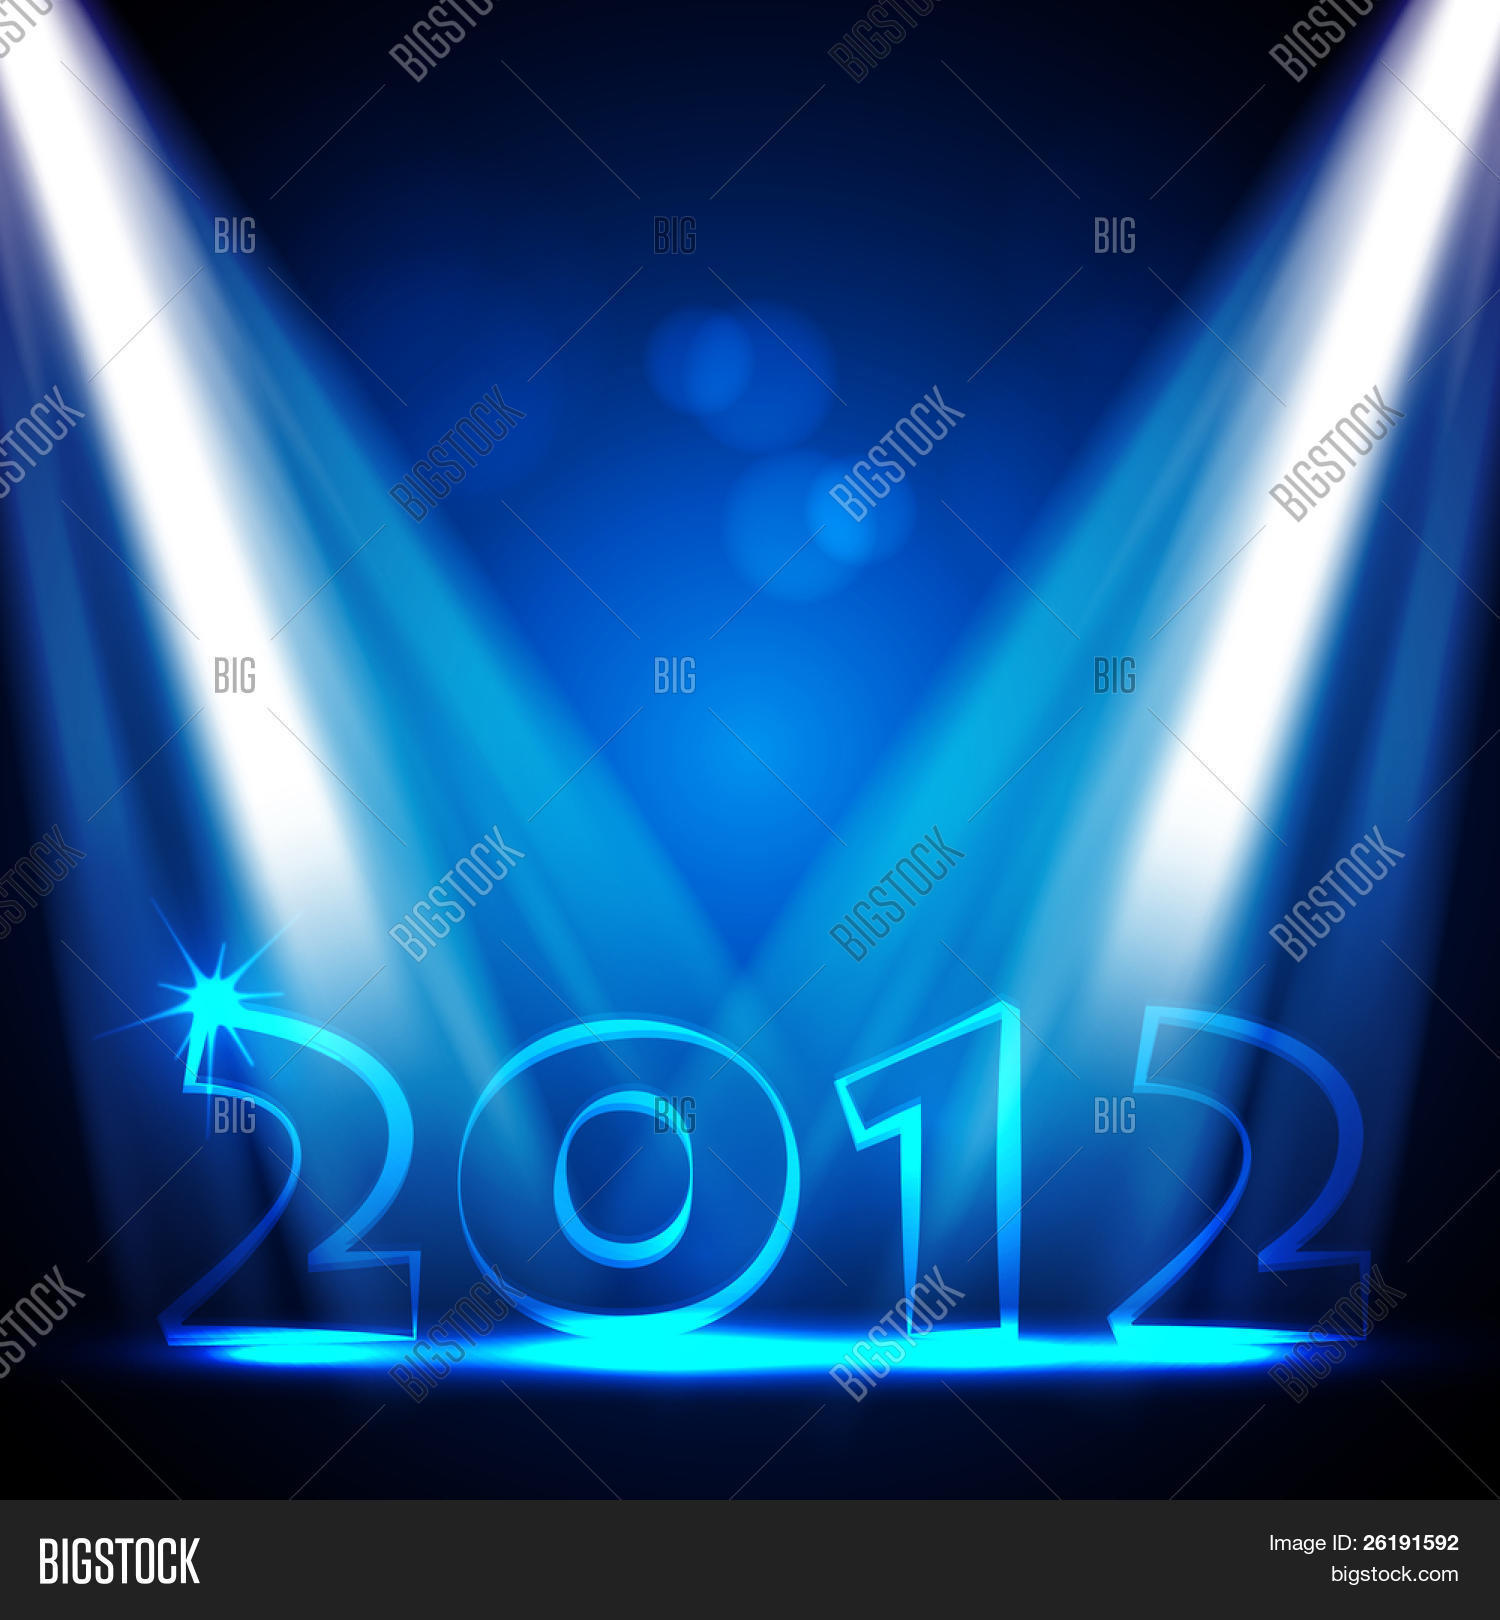 2012,2012 year,abstract,art,background,beautiful,blue,card,celebration,color,dark,december,decorate,decoration,decorative,effect,elegance,eleven,eve,event,festival,fireworks,glimmer,glimpse,glint,glitter,glow,graphic,greeting,happy,happy-new-year,happy new year,holiday,illustration,light,neon,new,new year,new year background,new year celebration,new years,new years eve,night,number,retro,season,shimmer,shine,show,snow,sparkle,stage,star,vector,vector design,winter,xmas,year